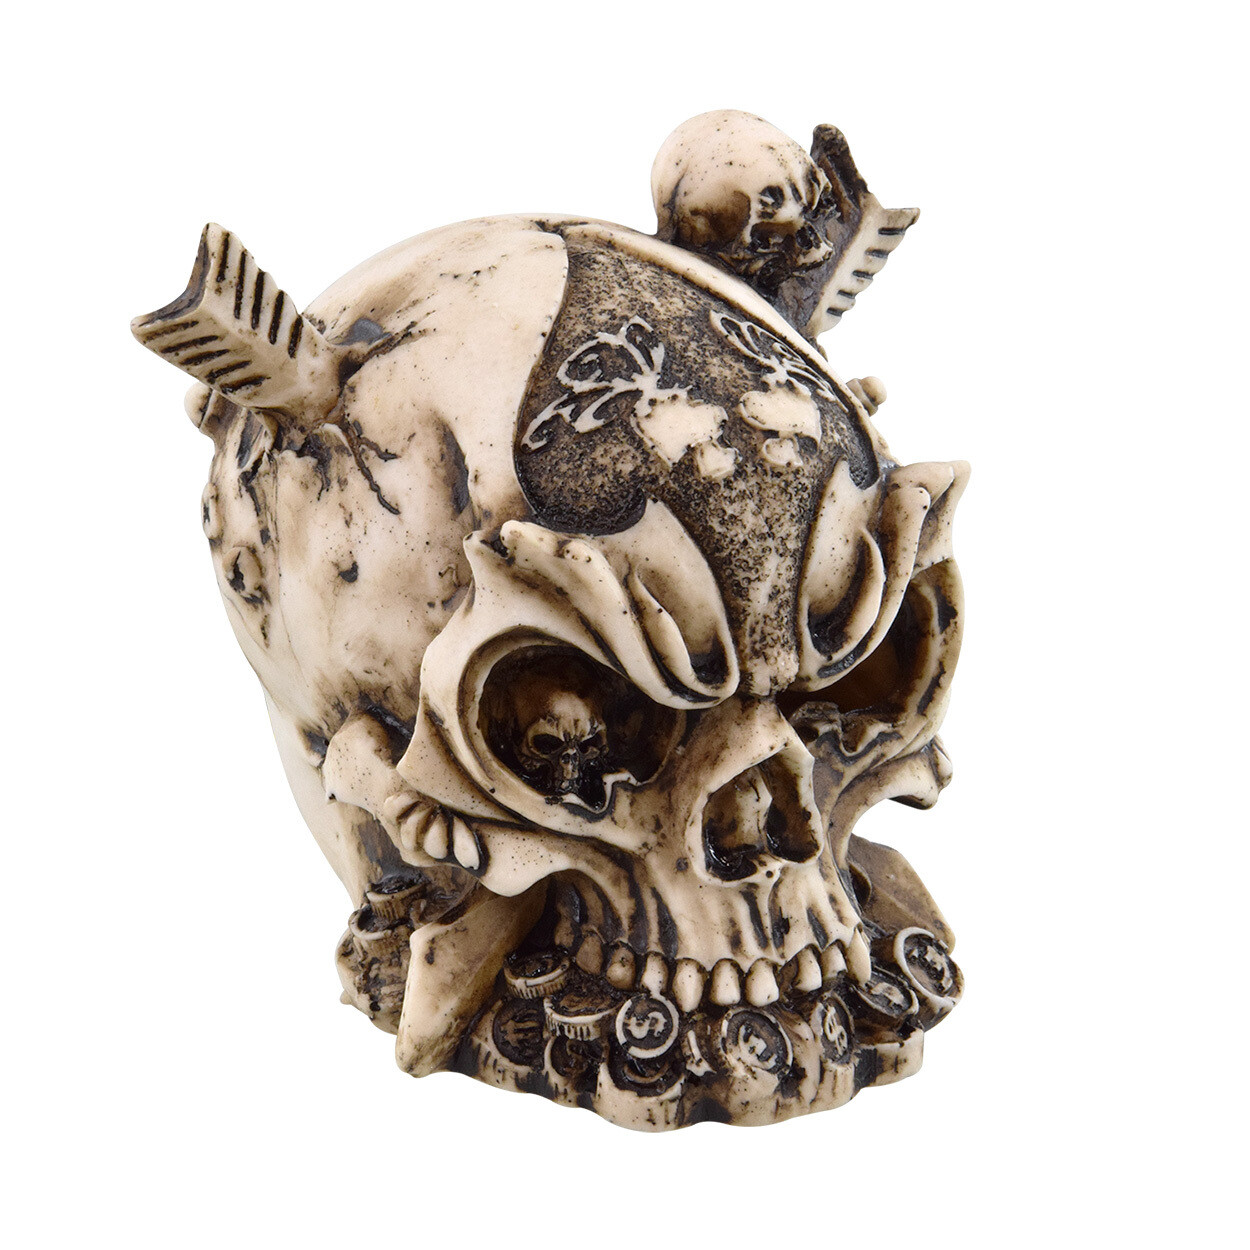 Underwater Treasures Warrior Skull